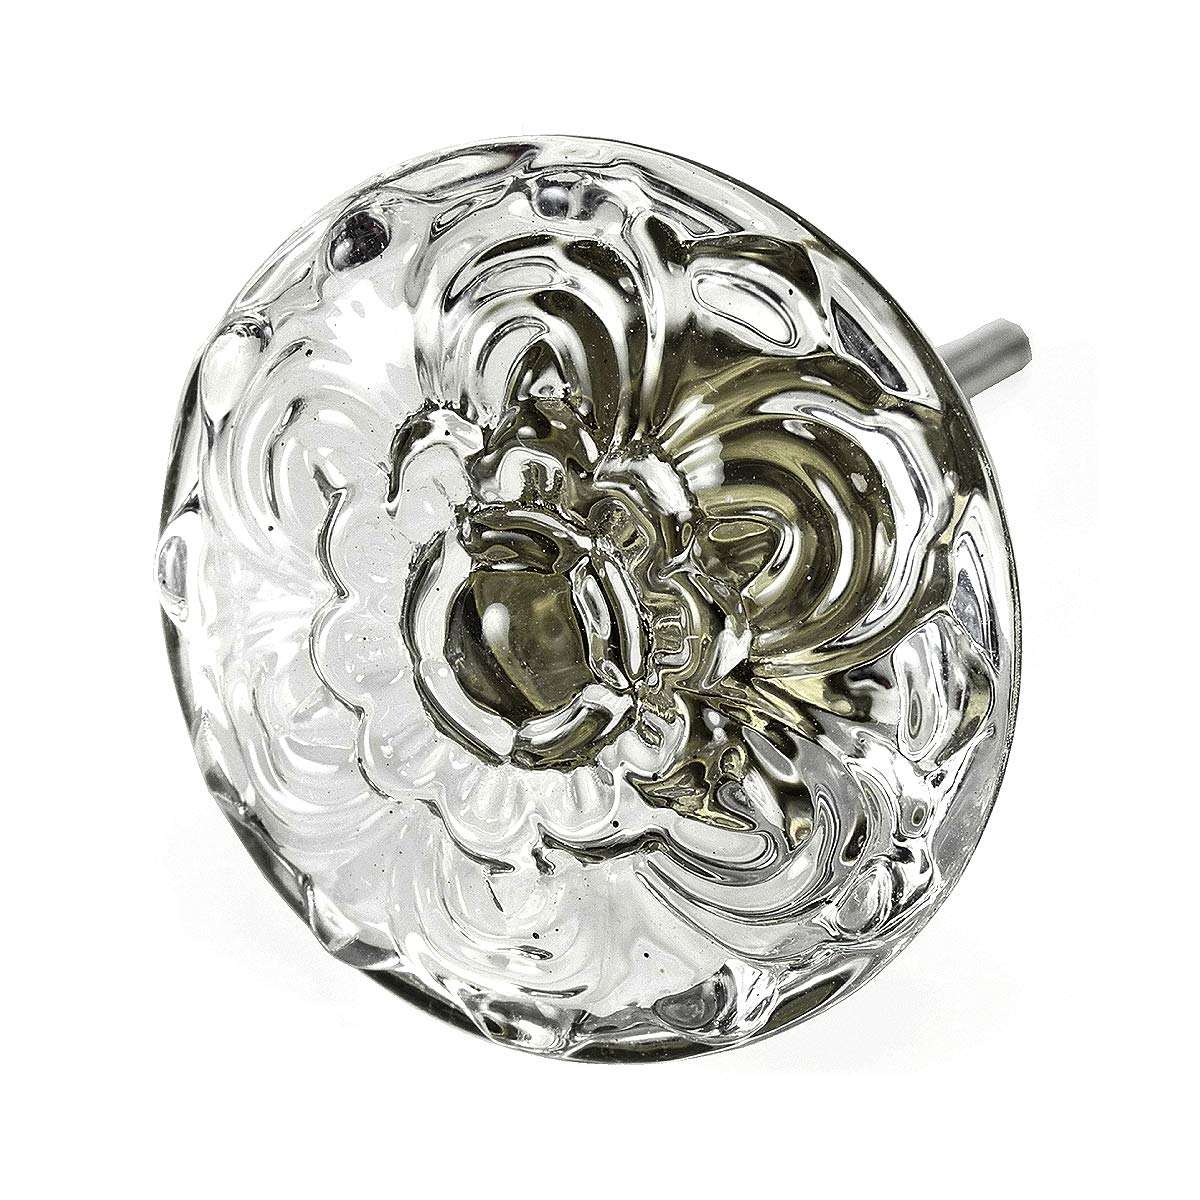 Girly Dresser Knobs Glass Drawer Pulls Cabinet Handles Vintage 10 Pack T100VF 35mm Clear Embossed Daisy Knob with Antique Bronze Base. Romantic Decor & More